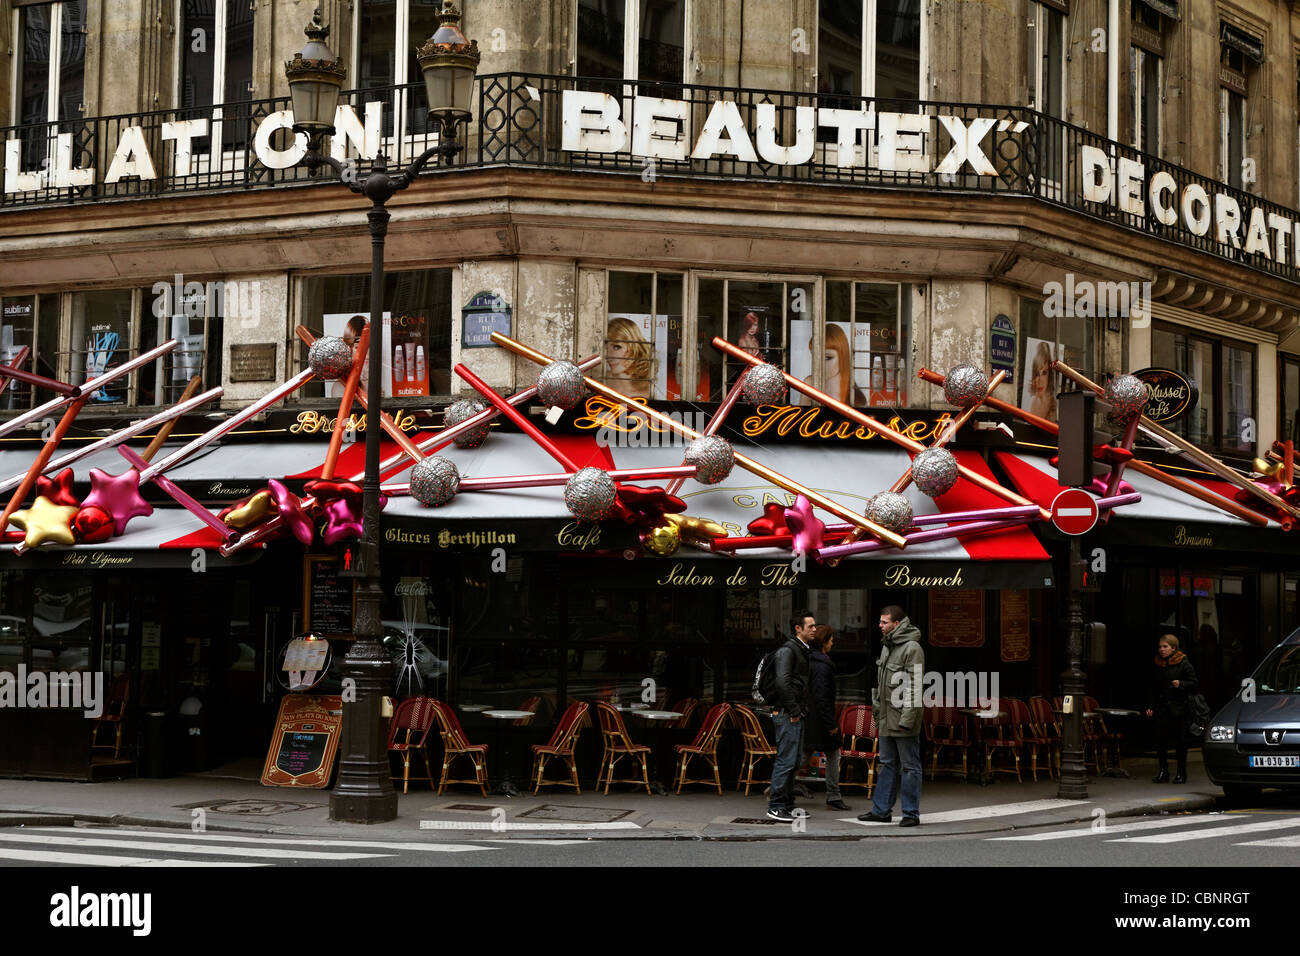 Parisian brasserie Le Musset with elaborate Christmas decorations (2011) Stock Photo